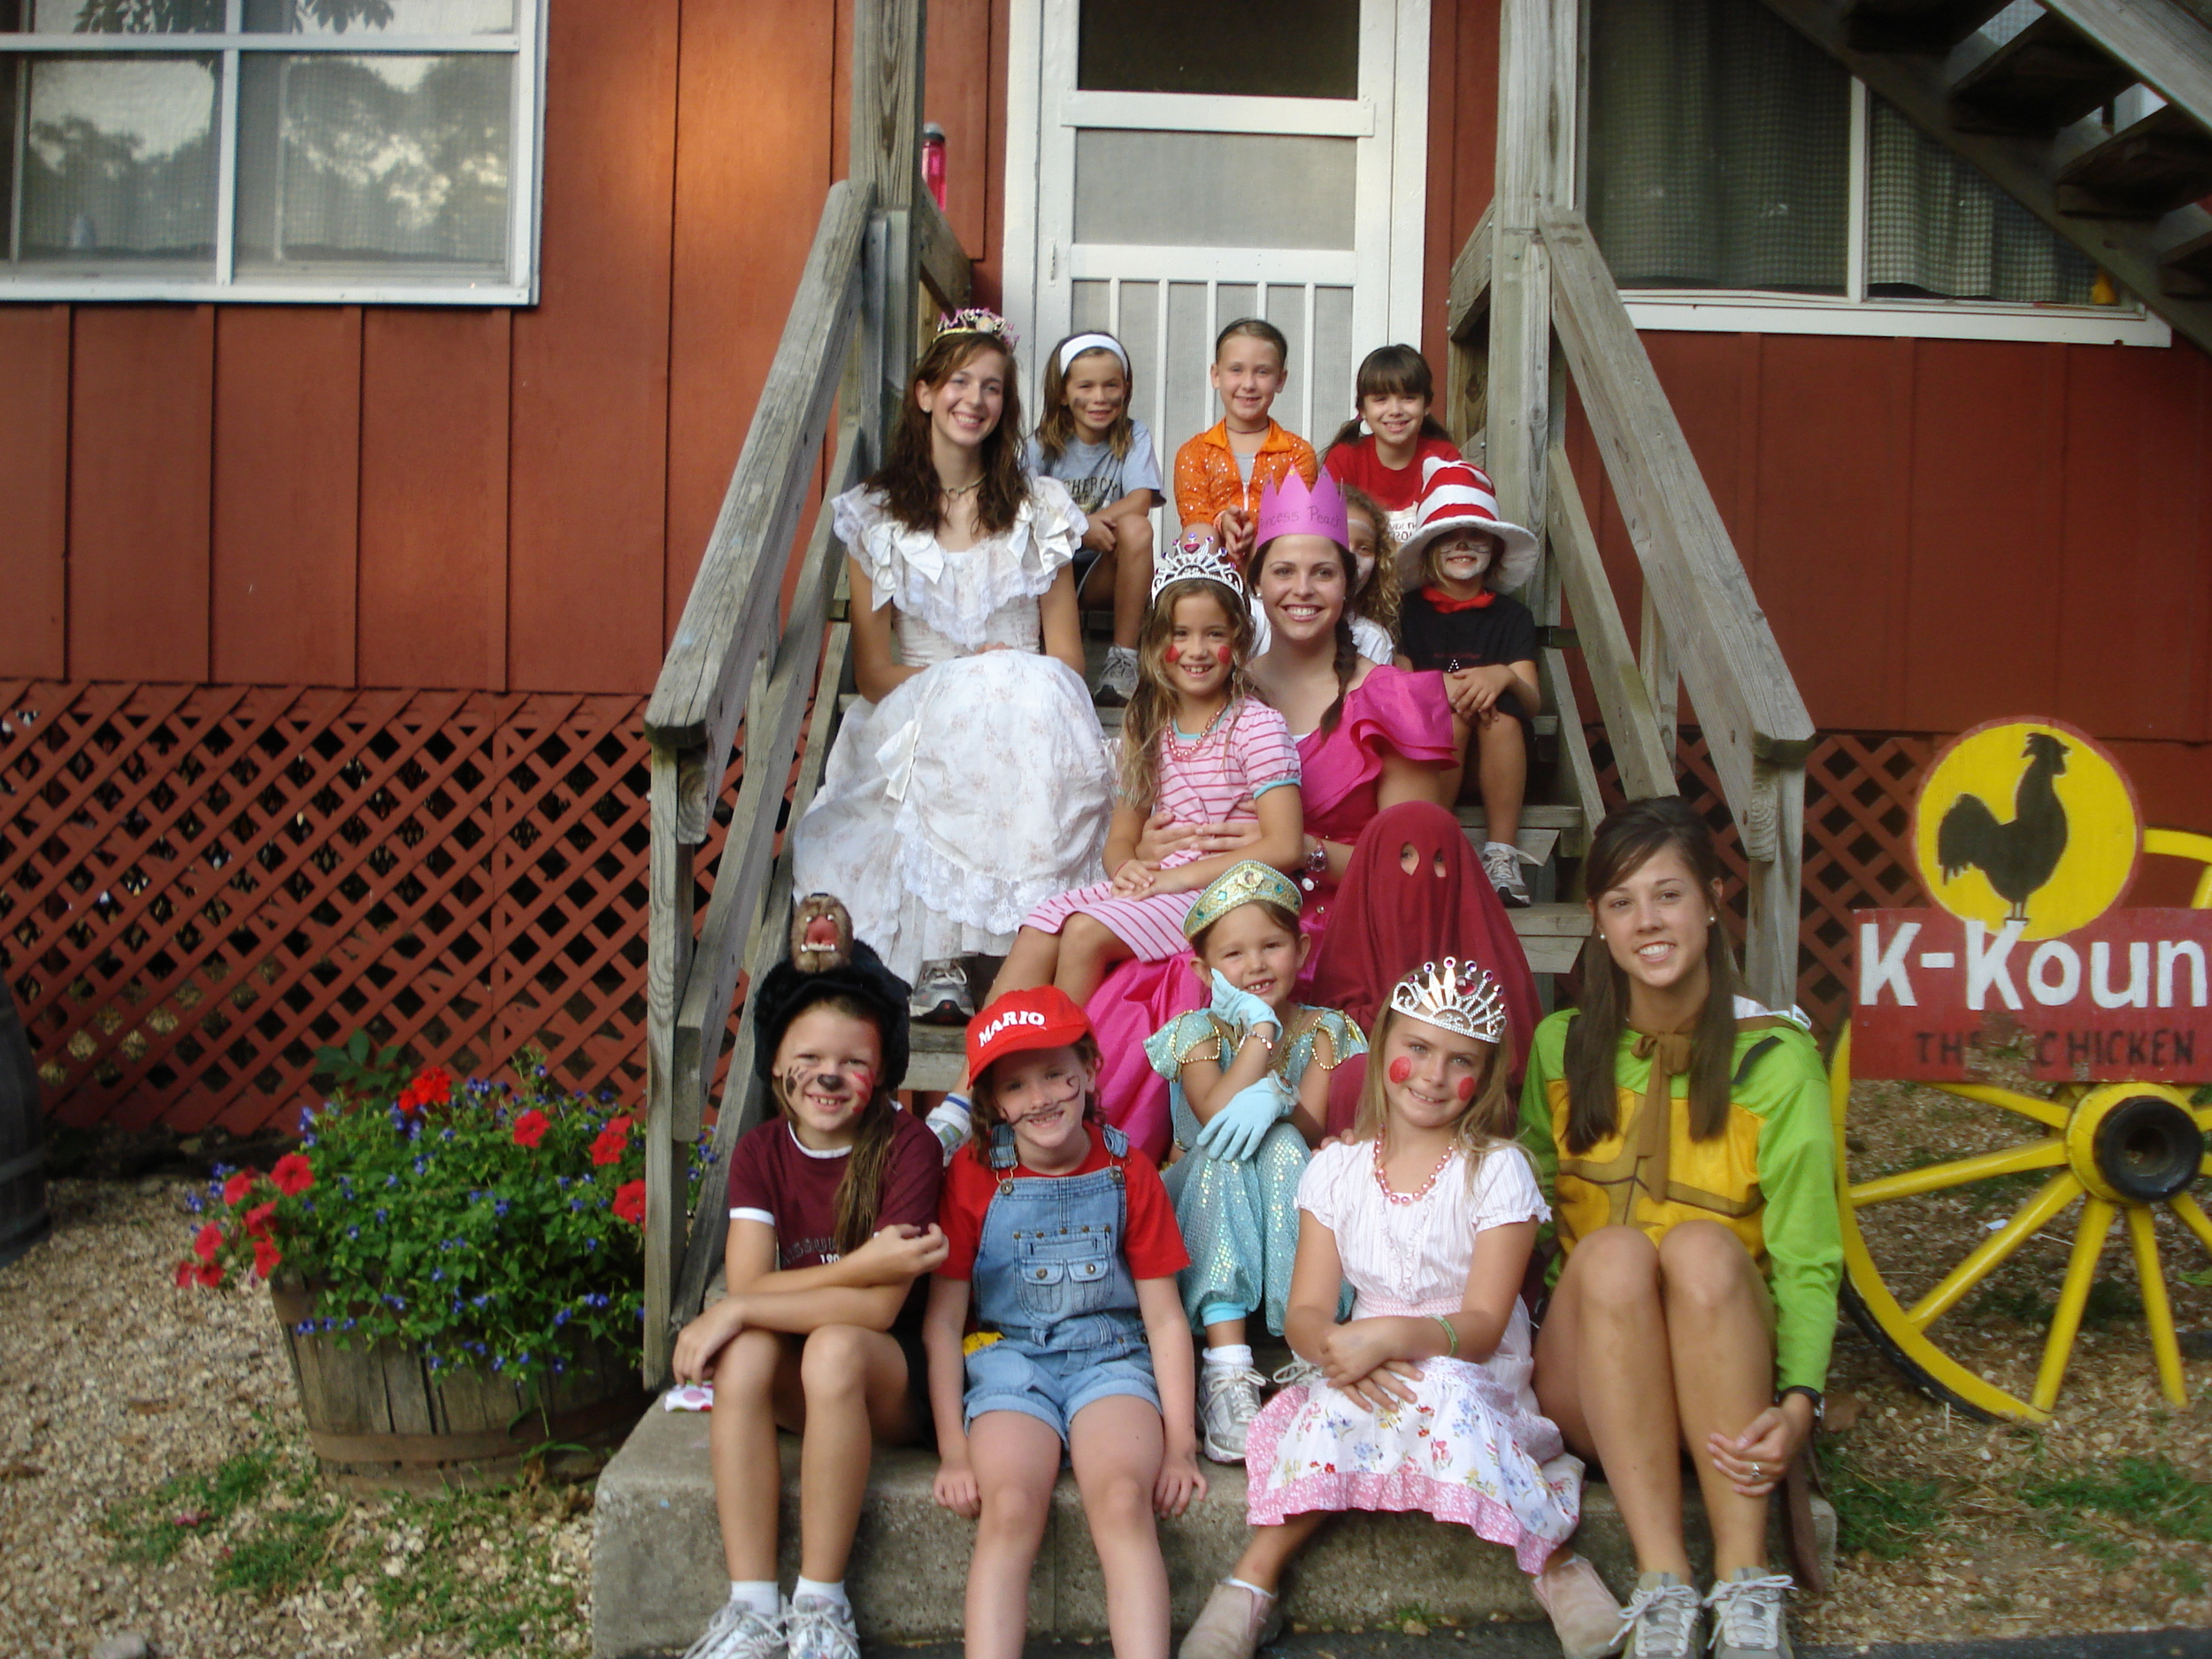 I'm the princess in pink behind Jasmine and the red ghost. :)